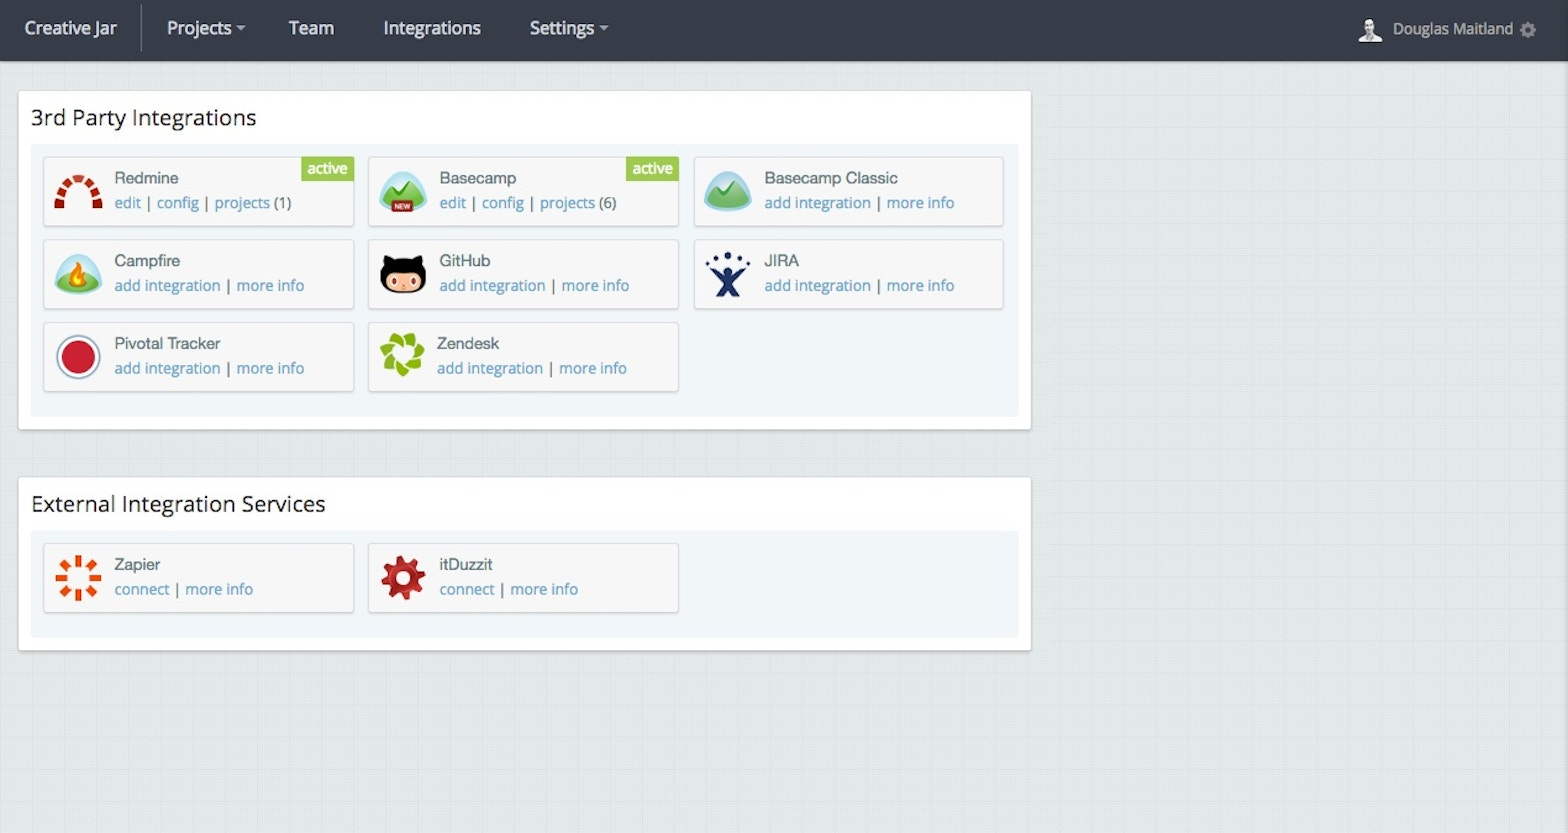 Screenshot showing the integrations available with BugHerd, including Redmine, Basecamp, Campfire, GitHub, JIRA, Pivotal Tracker and ZenDesk.